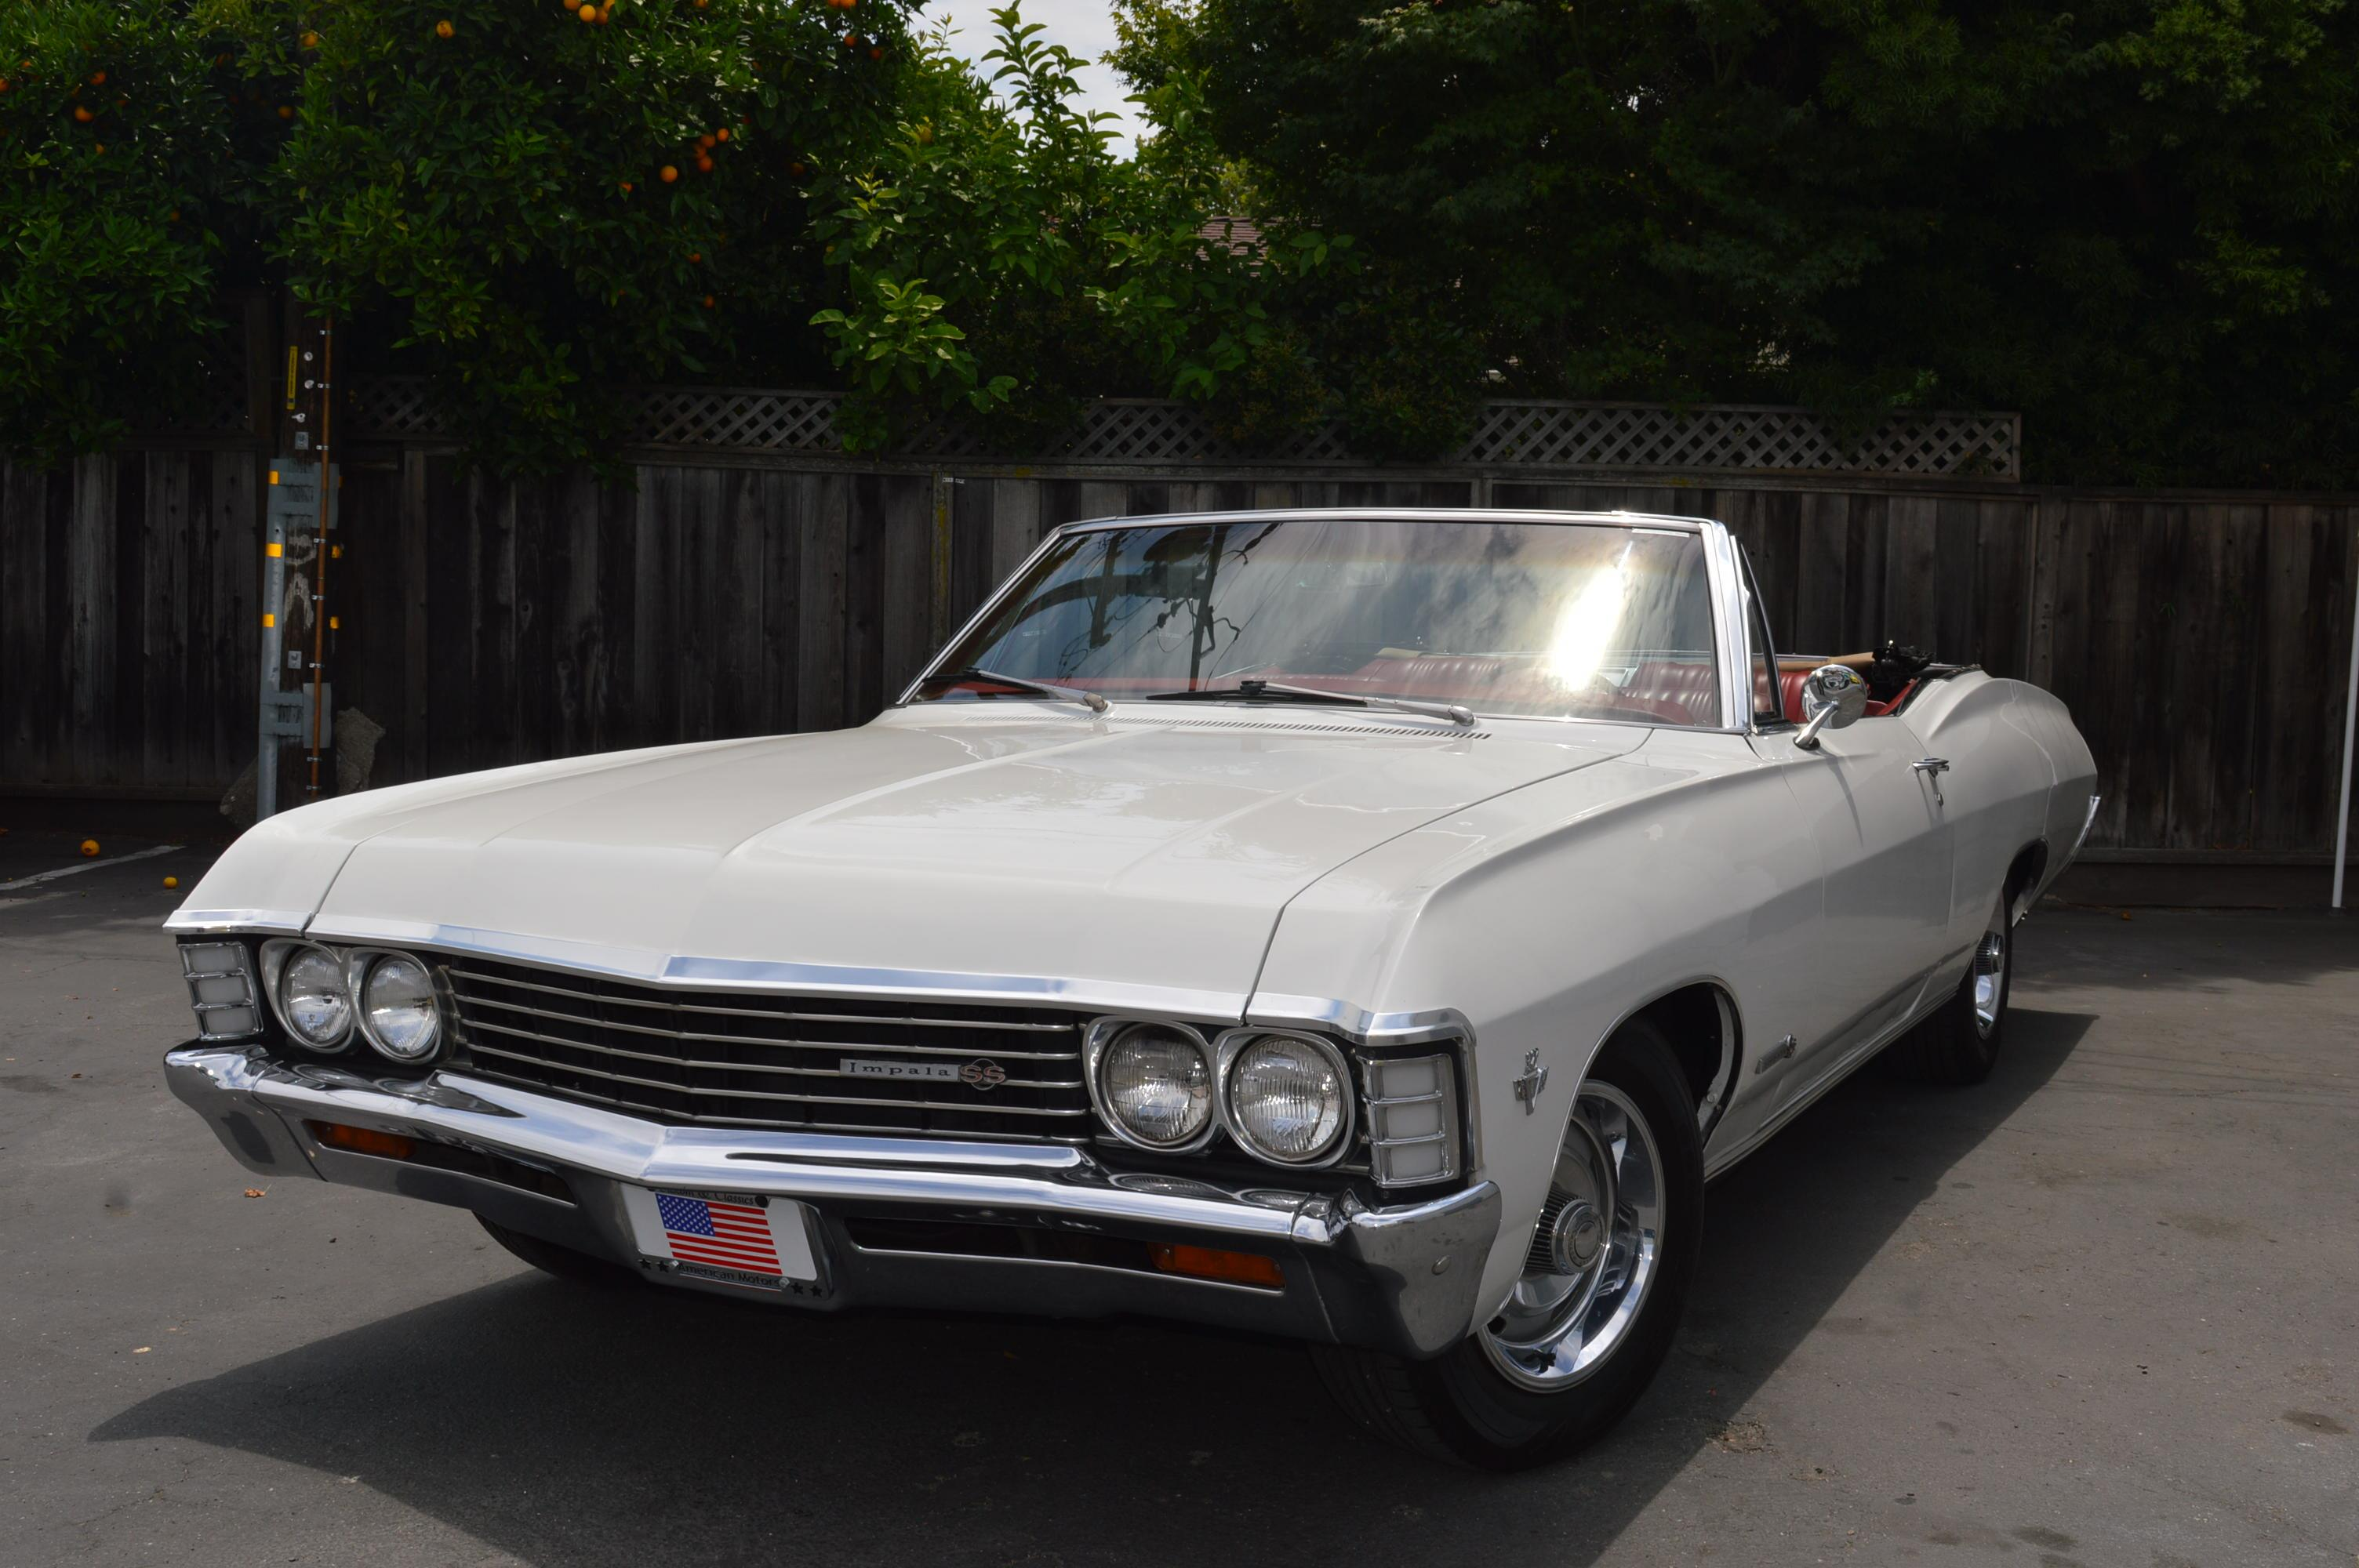 1967 chevrolet impala convertible ss ss frame off restored ac pw ermine white co classic. Black Bedroom Furniture Sets. Home Design Ideas